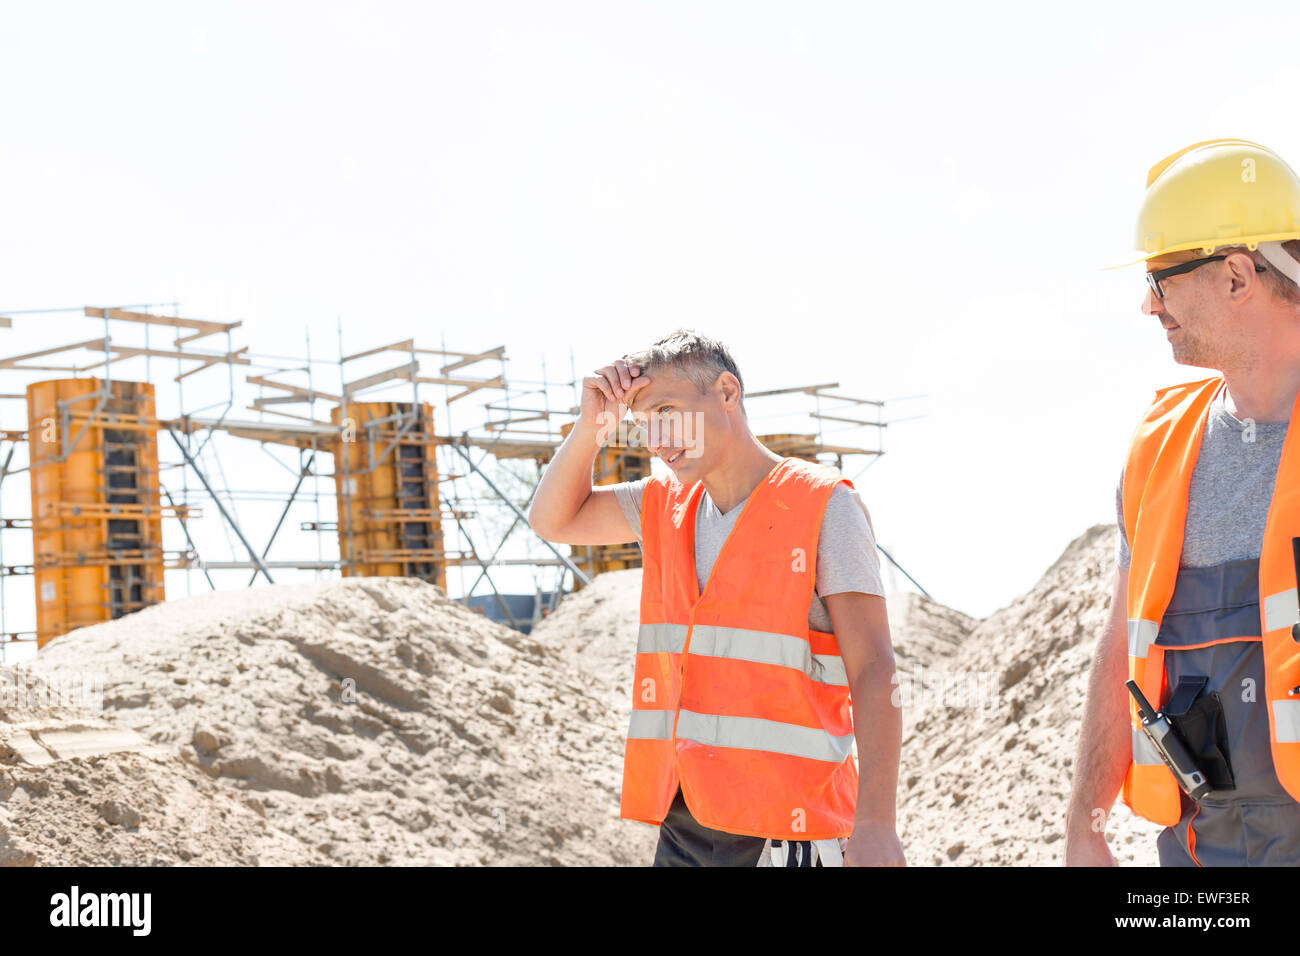 Construction worker looking at tired colleague wiping sweat at site Stock Photo